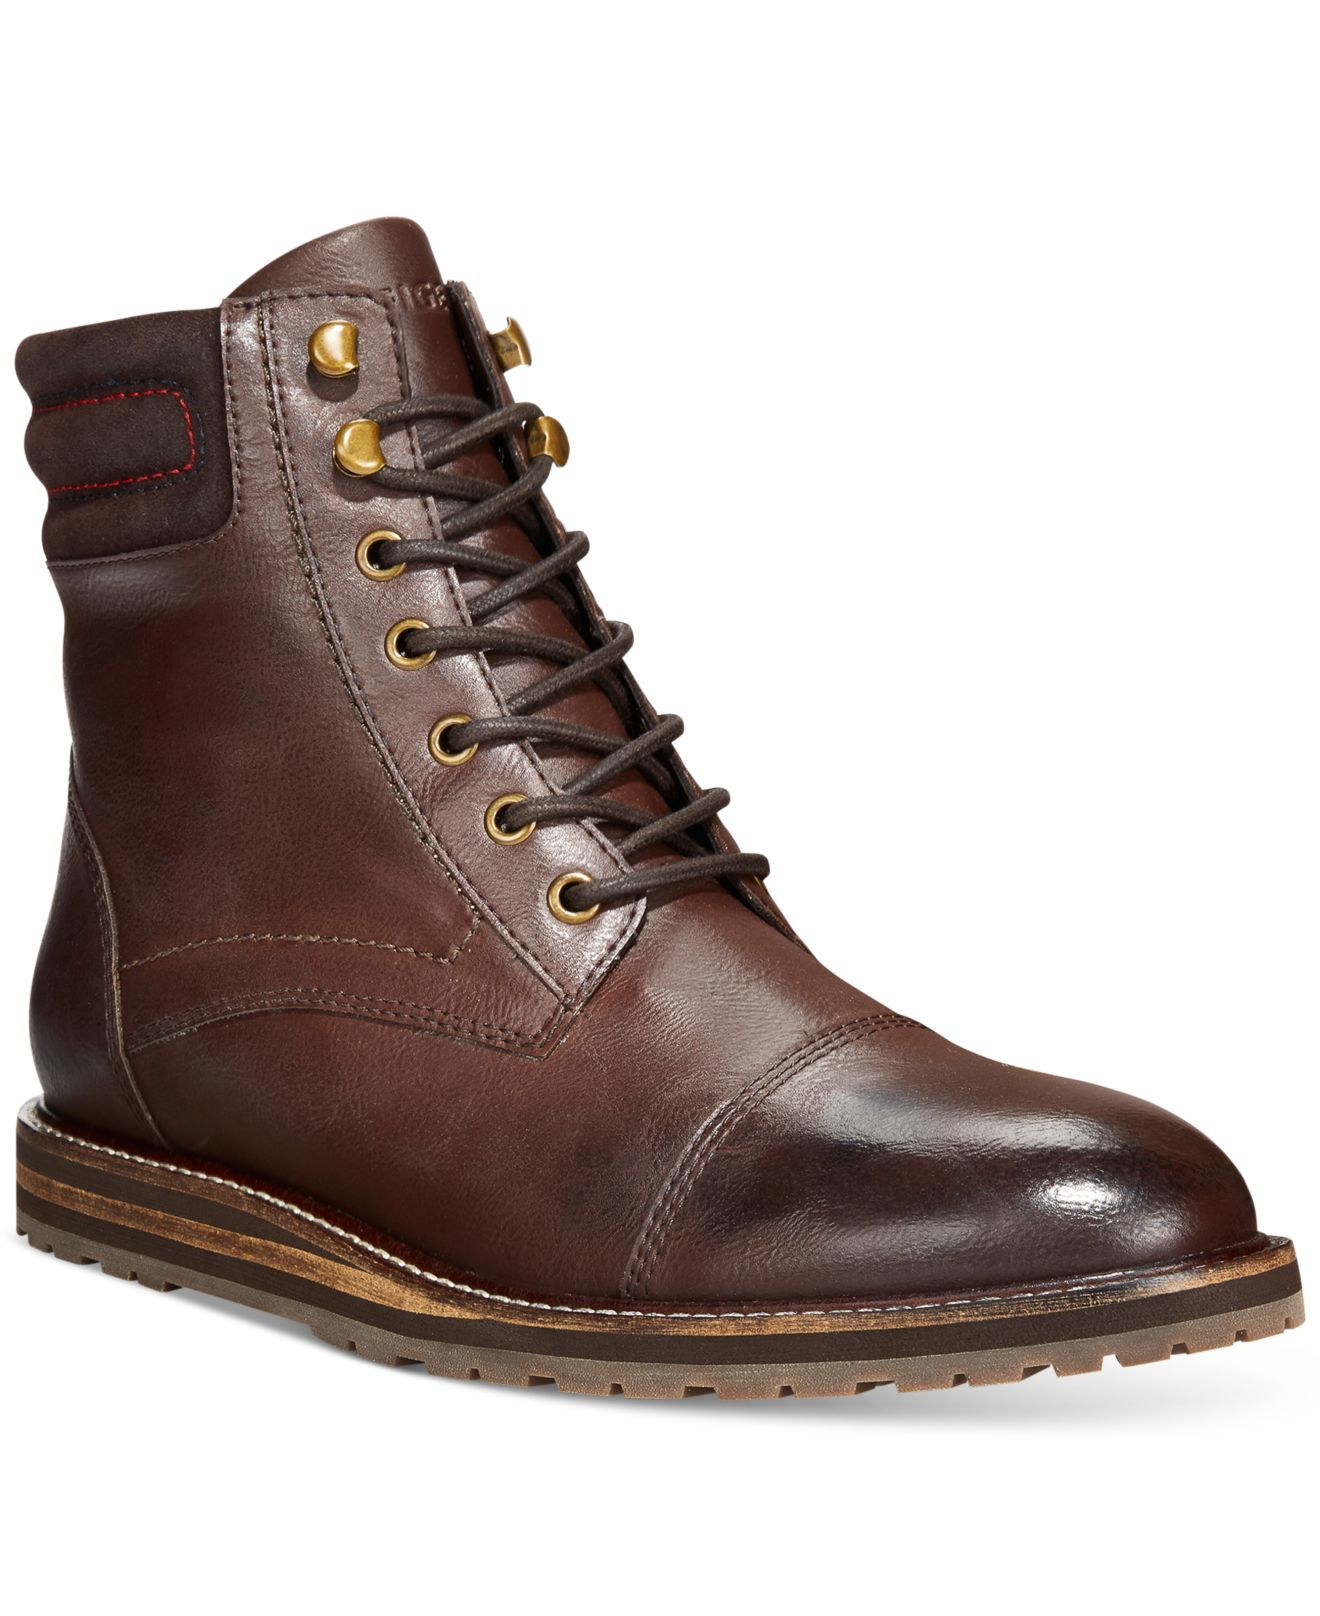 Tommy Hilfiger Boots Mens - Tommy Hilfiger Angelo Brown